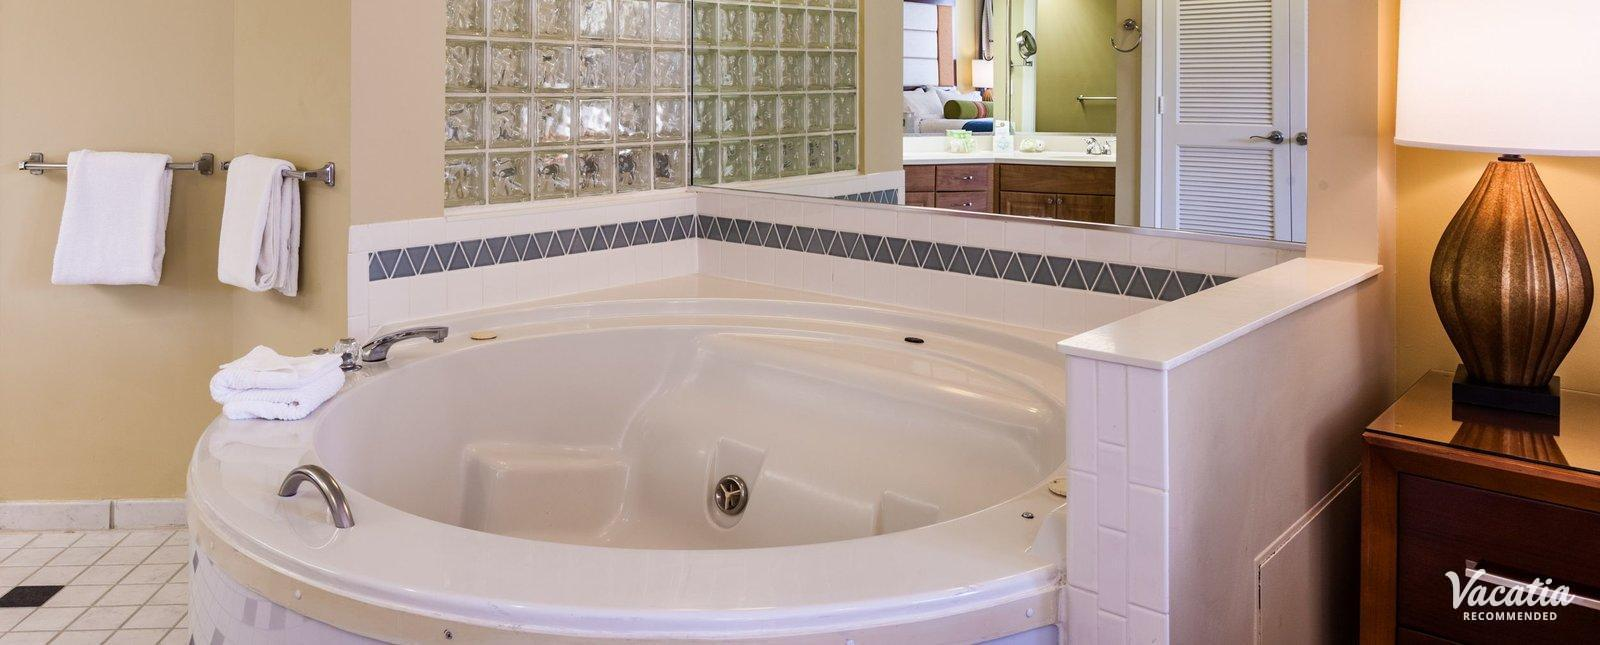 Marriott's Imperial Palms Villas condo rentals with jacuzzi tubs